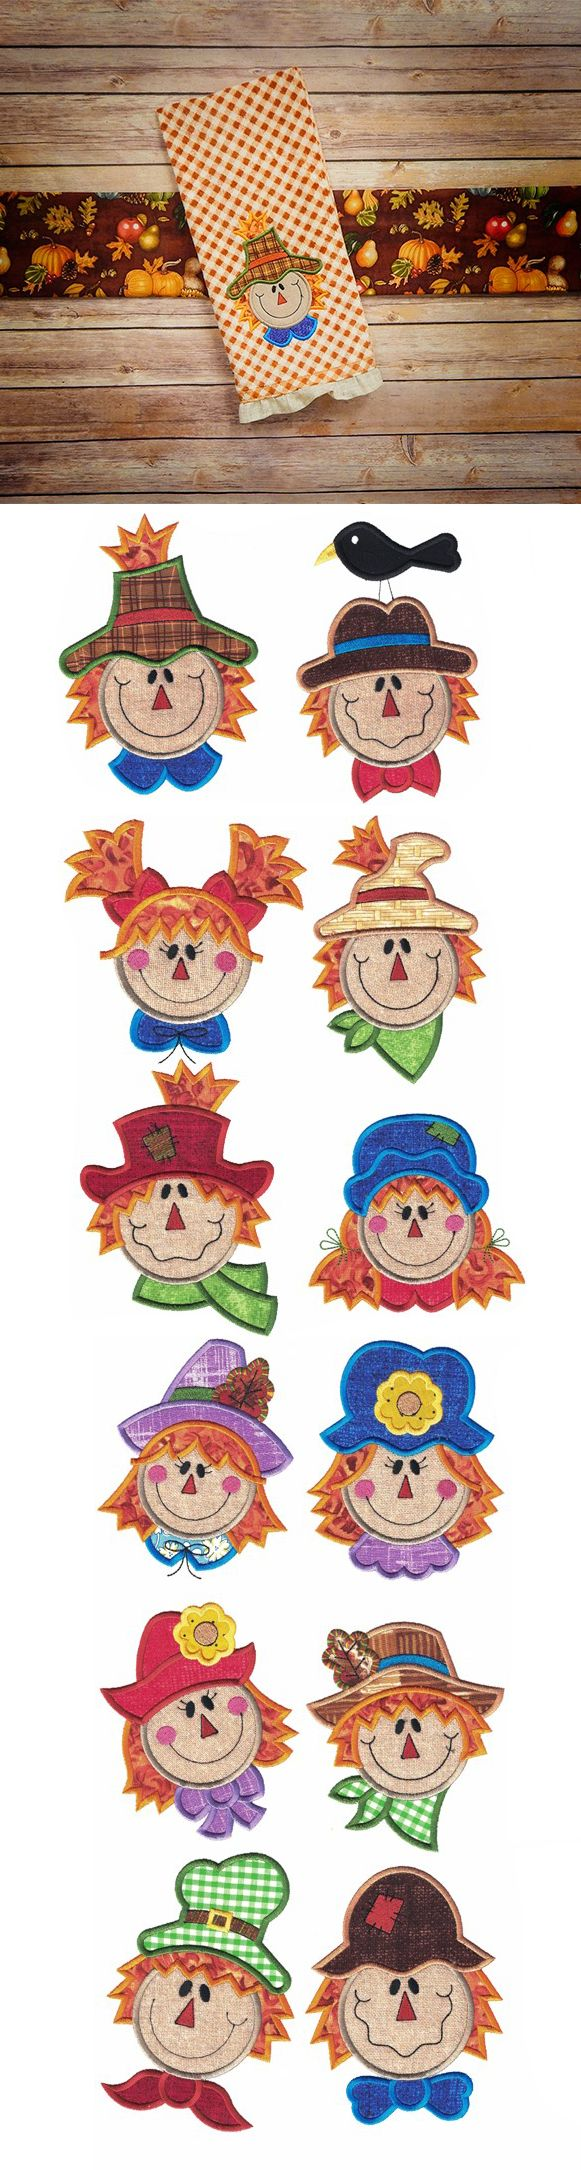 Whimsical Scarecrows Applique embroidery design set is available for instant download at designsbyjuju.com